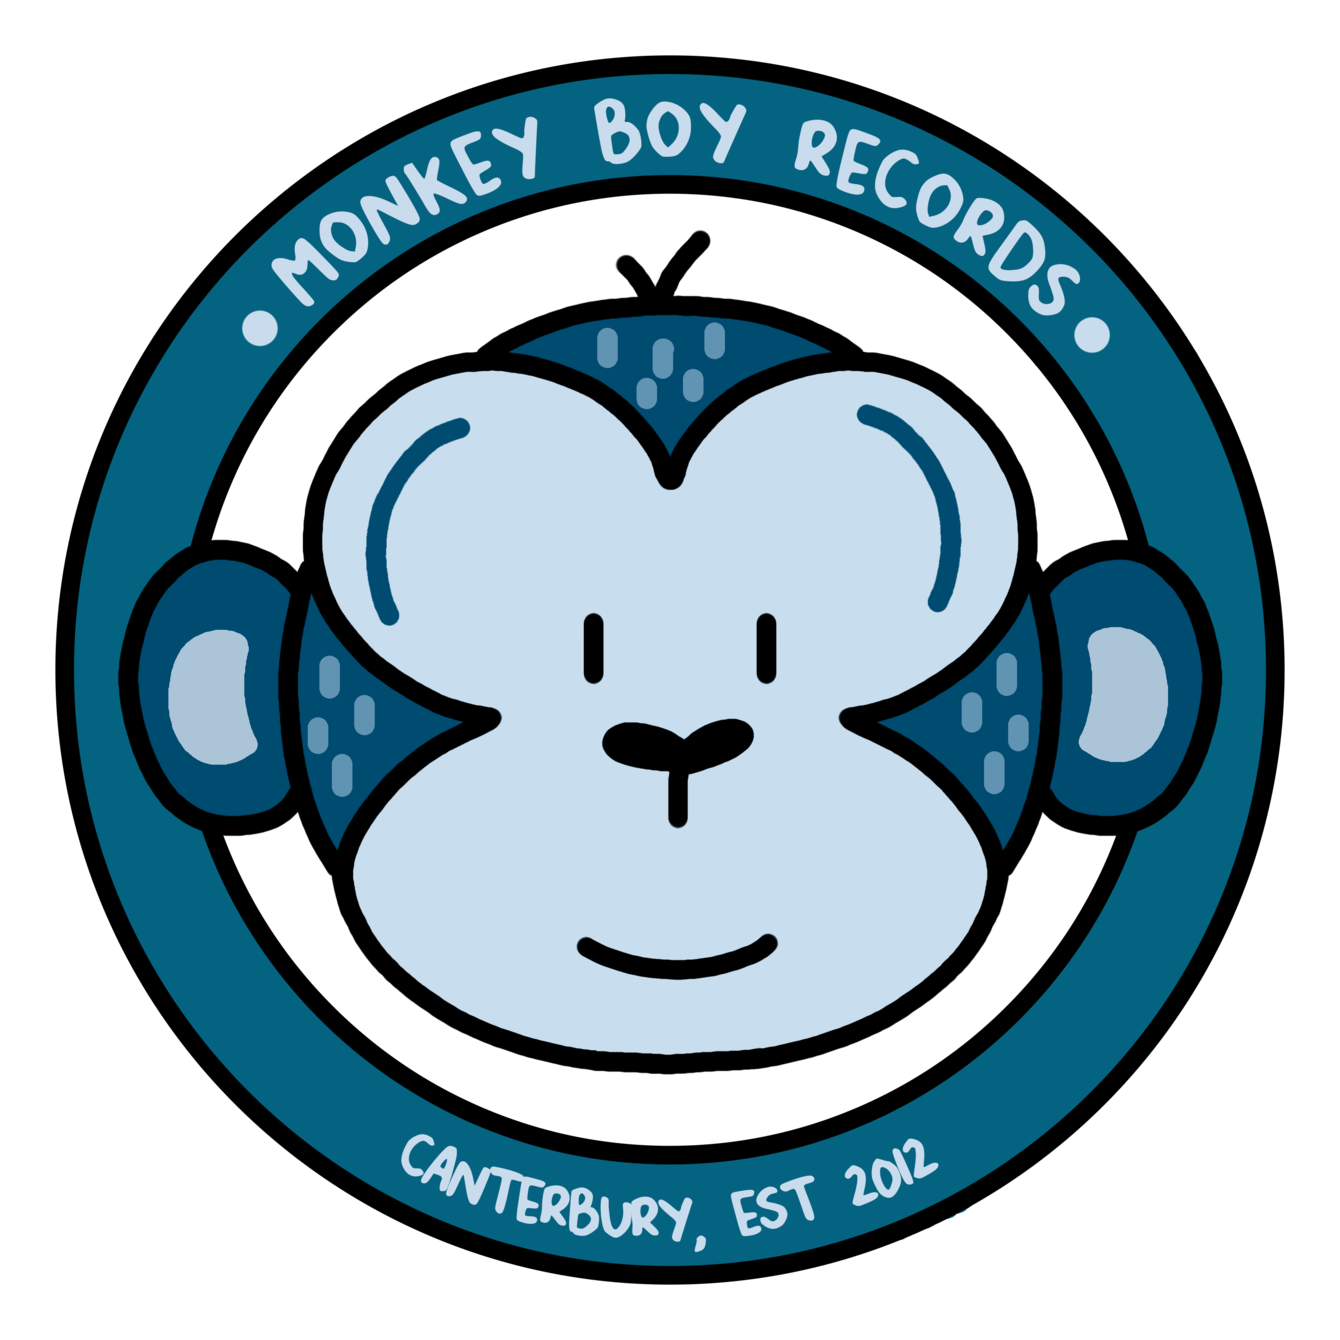 Monkey Boy Records